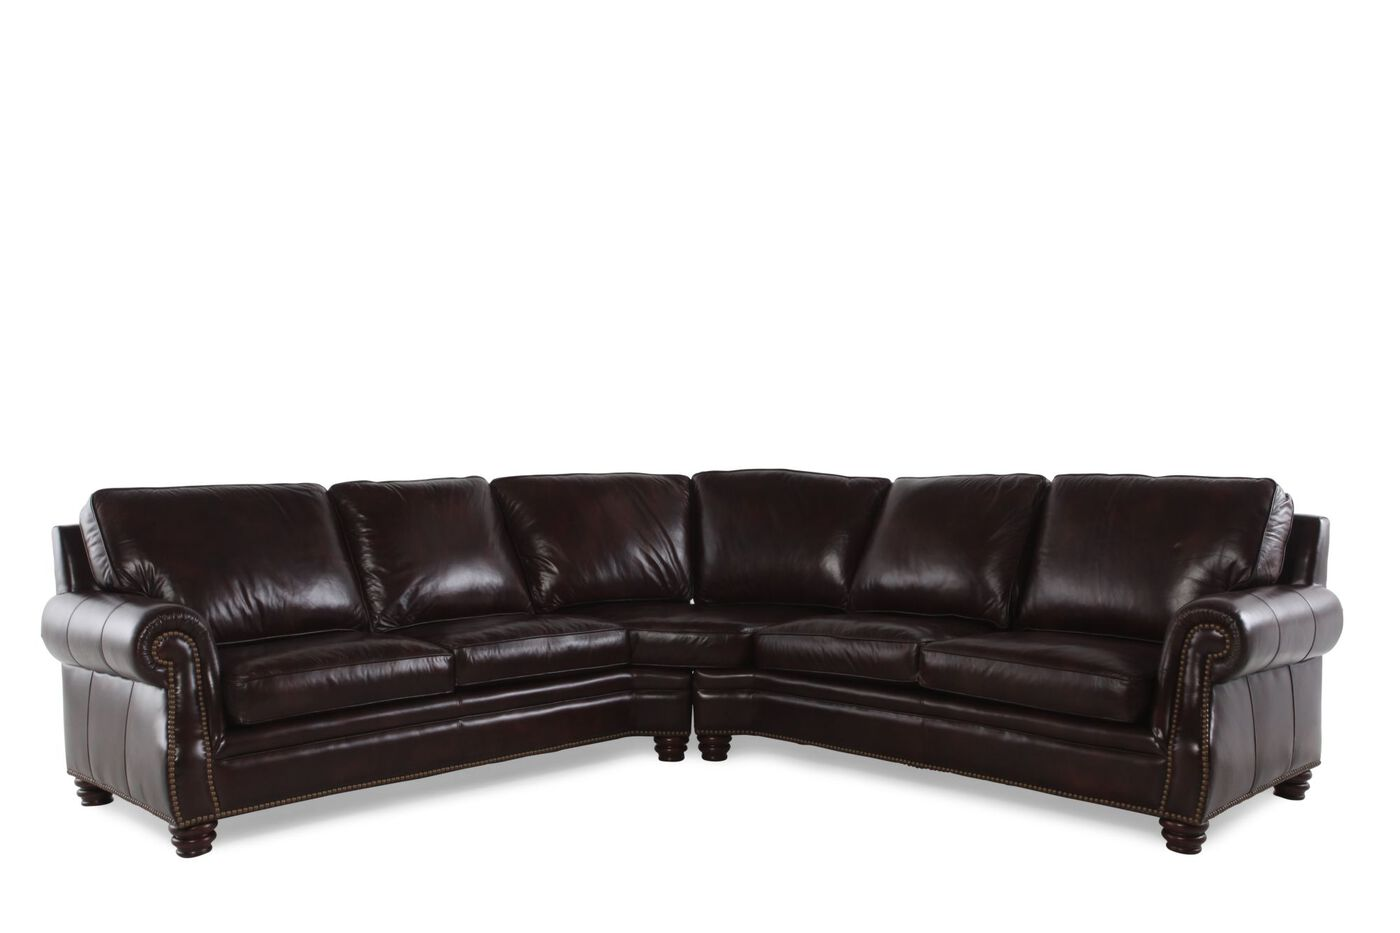 Henredon two piece leather sectional mathis brothers for Sectional sofa mathis brothers